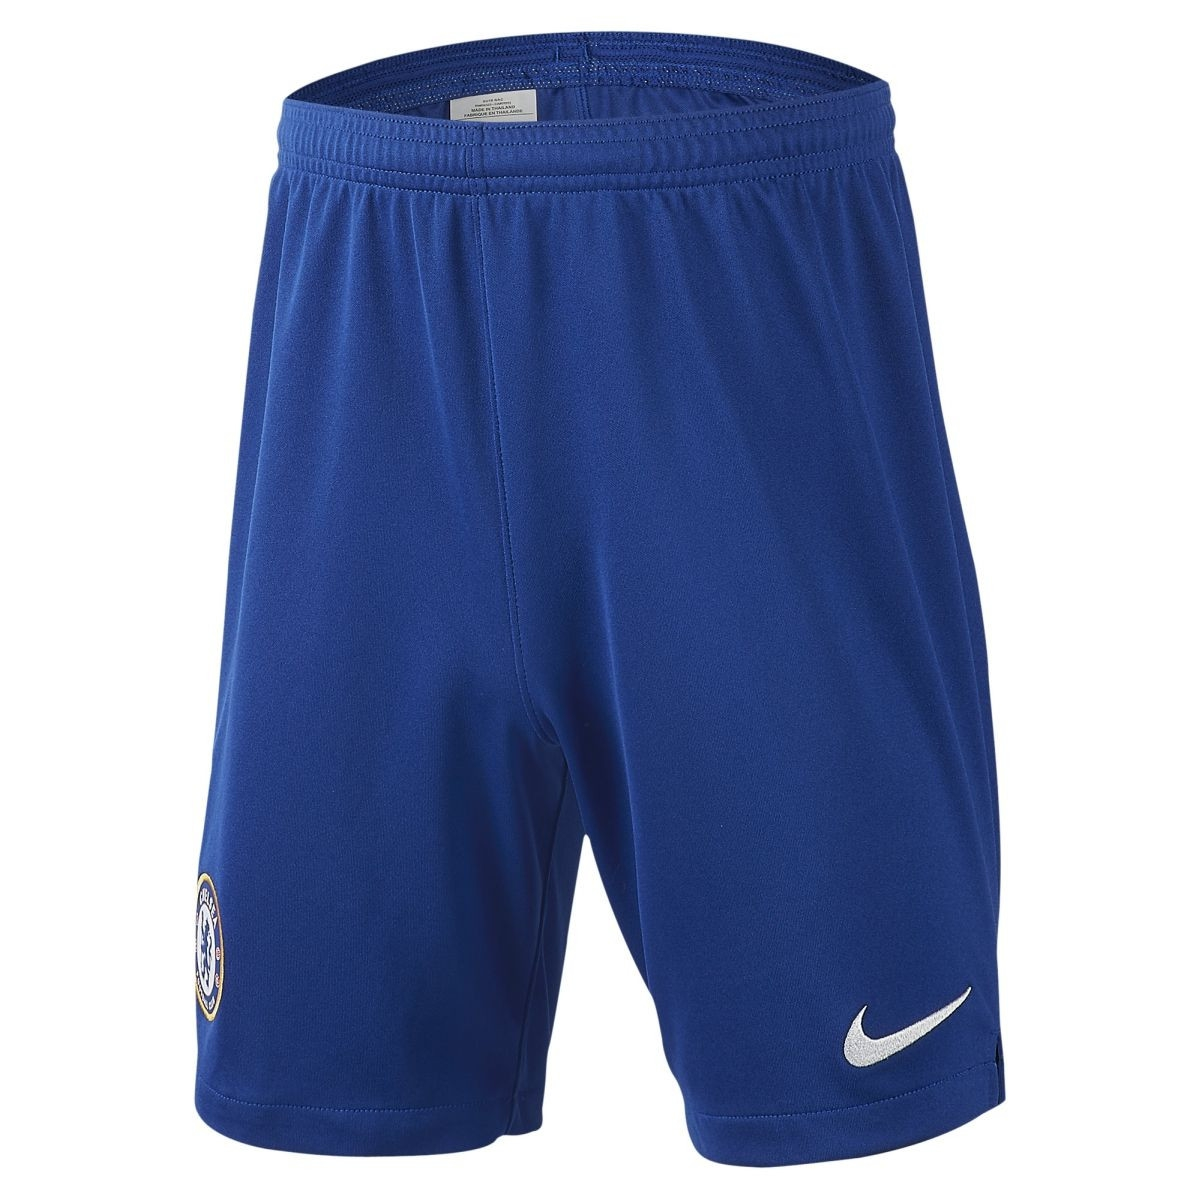 Image of Chelsea home shorts 2019/20 - youth-YM | 137-147